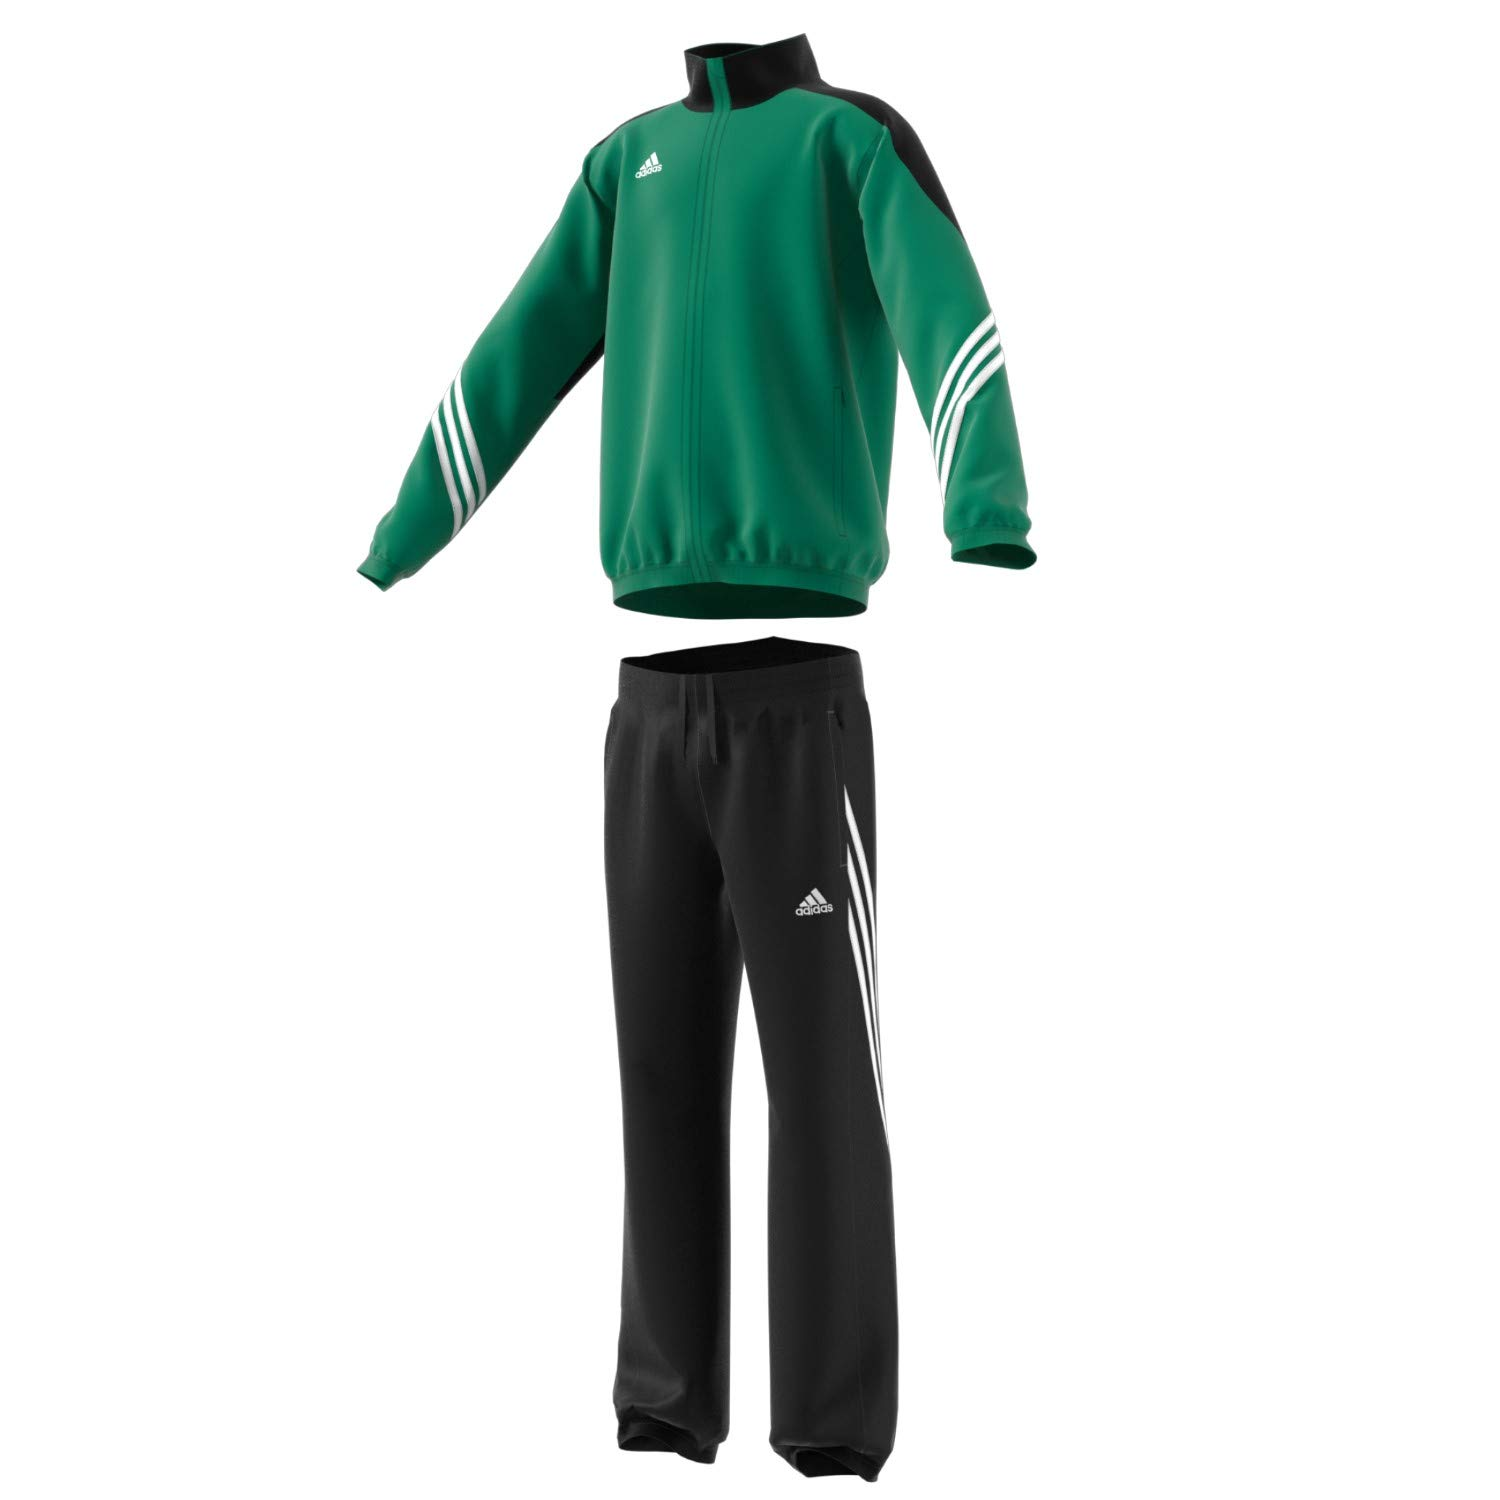 adidas Boys Tracksuit Woven Sereno14 Boys Presentation Football Training Suit Green/Black 7-15 Years F49682